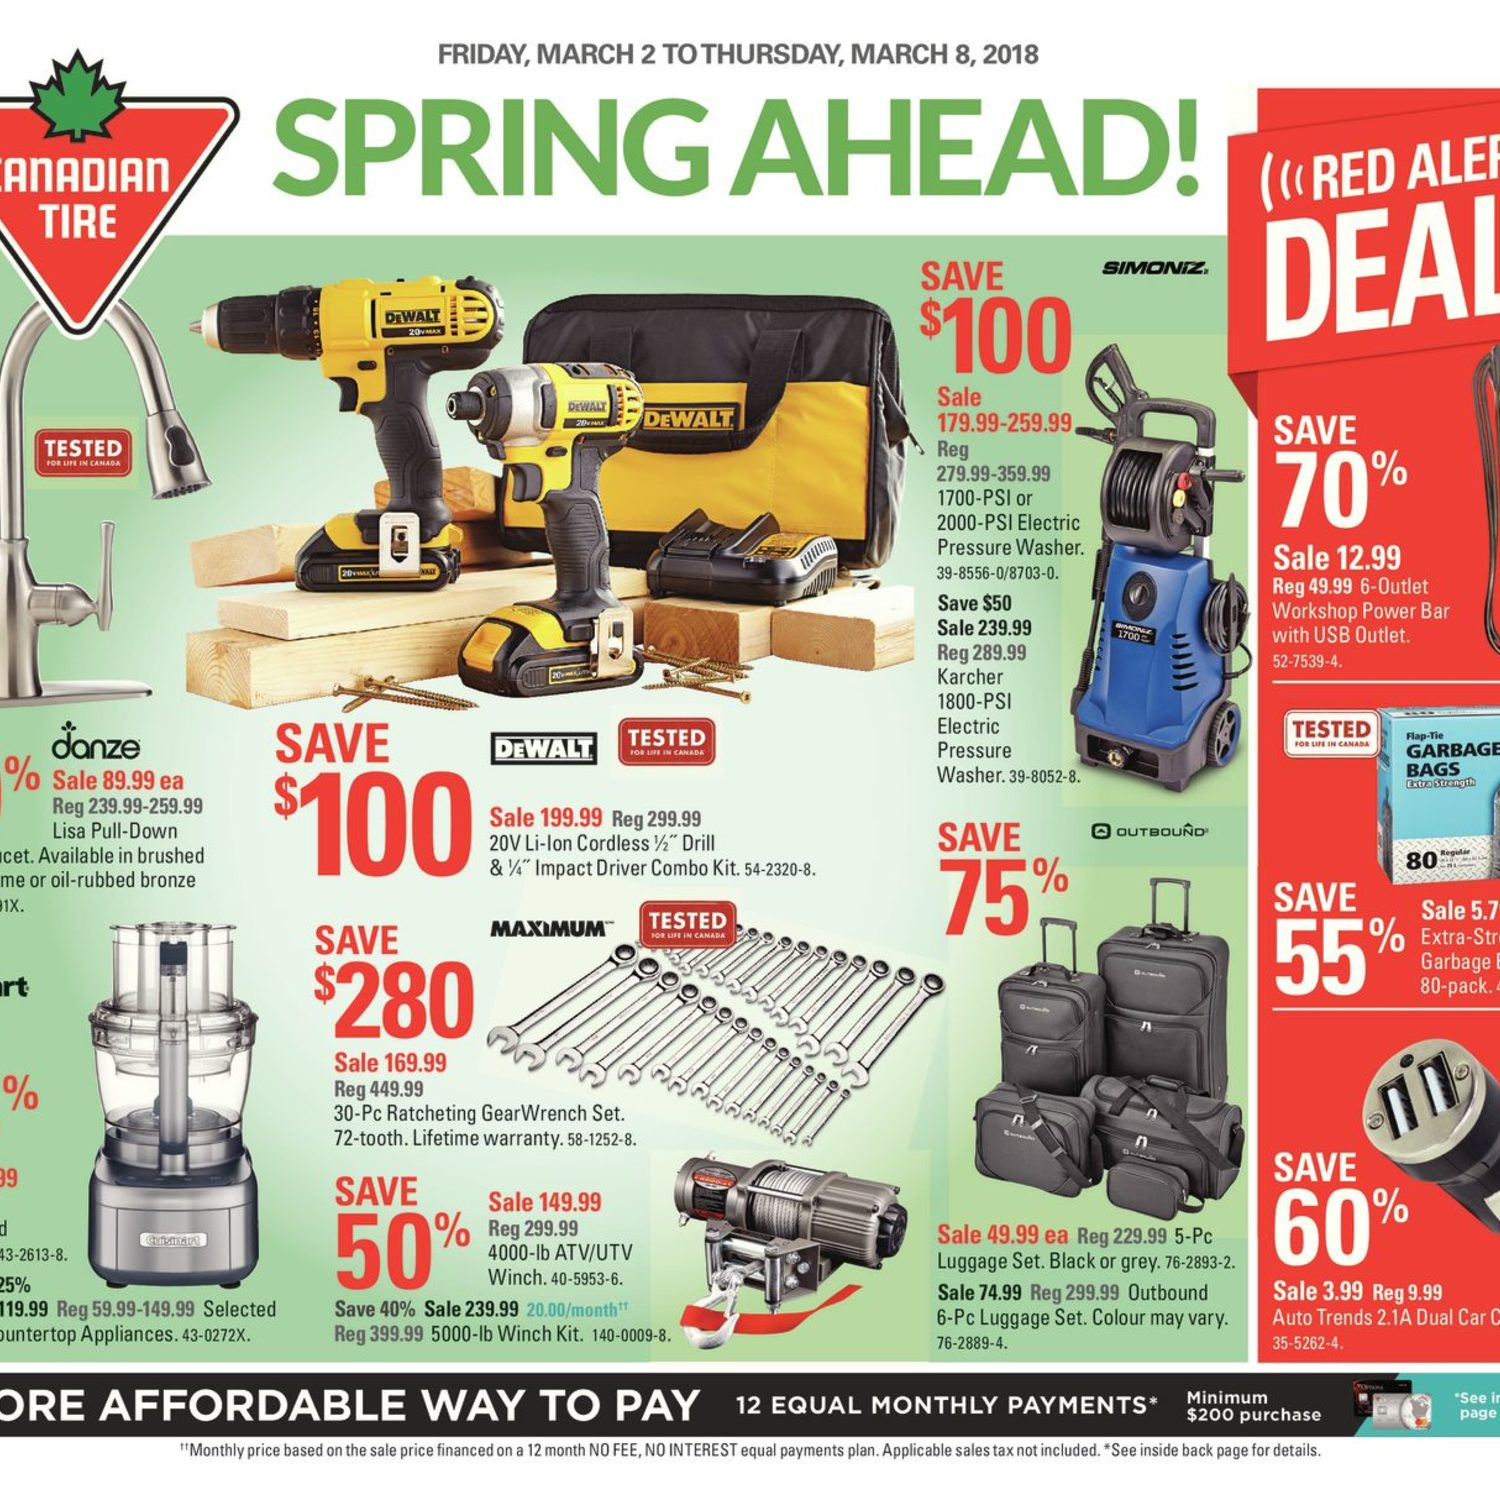 Canadian tire weekly flyer weekly spring ahead mar 2 8 canadian tire weekly flyer weekly spring ahead mar 2 8 redflagdeals keyboard keysfo Image collections